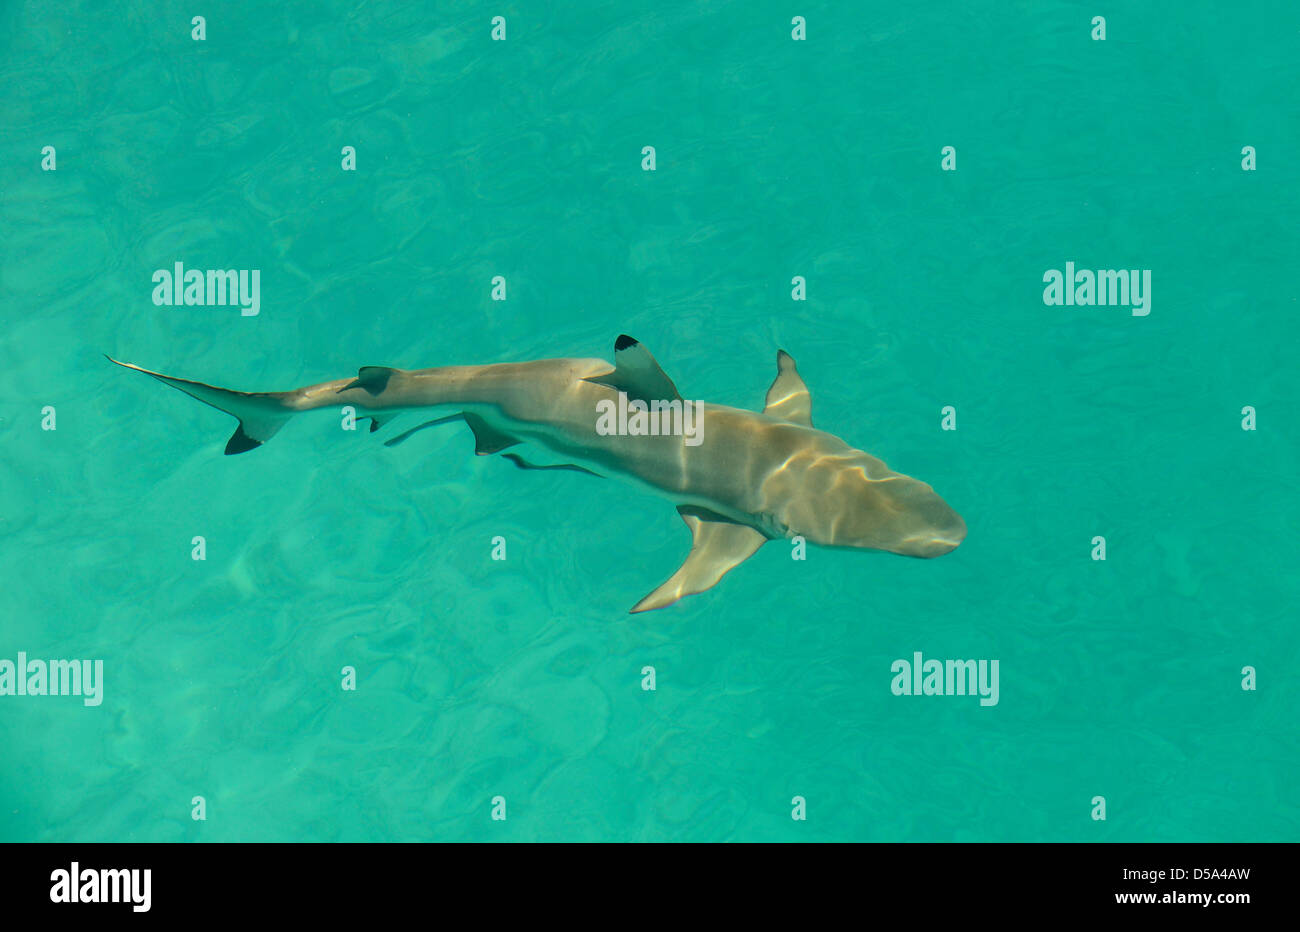 Blacktip Reef Shark (Carcharhinus melanopterus) swimming in